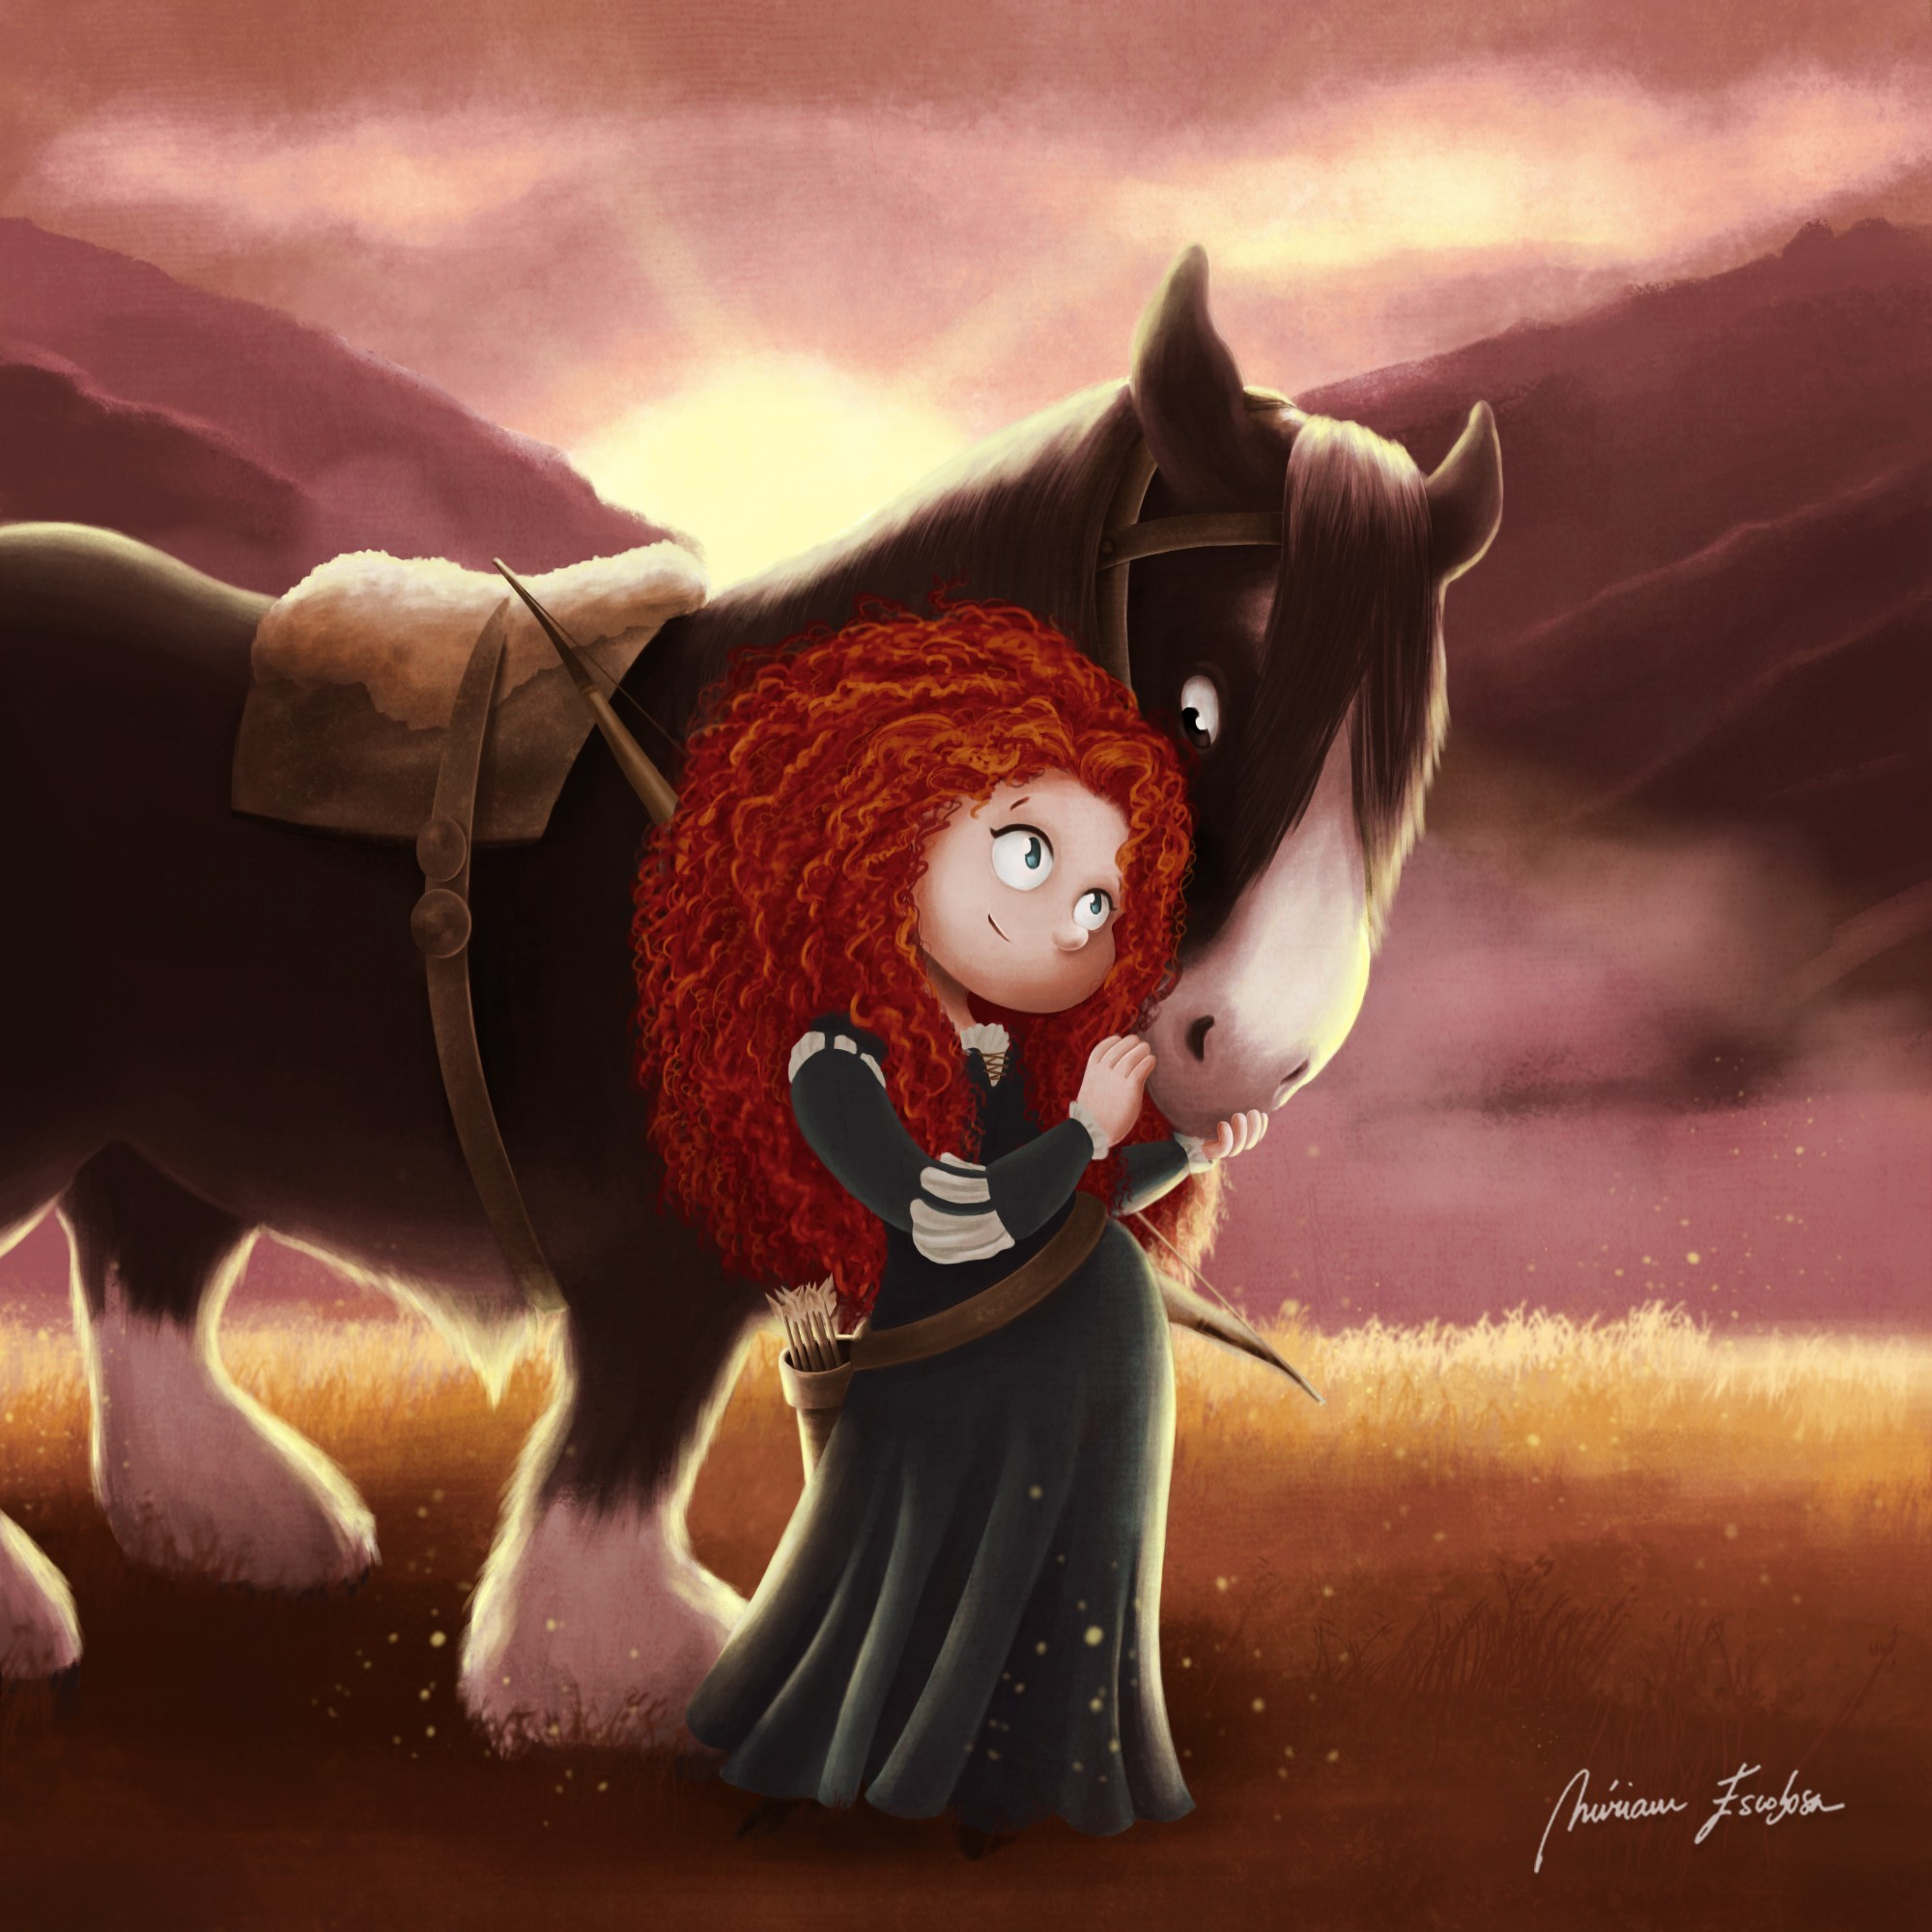 Merida from Brave by Miriam Escobosa